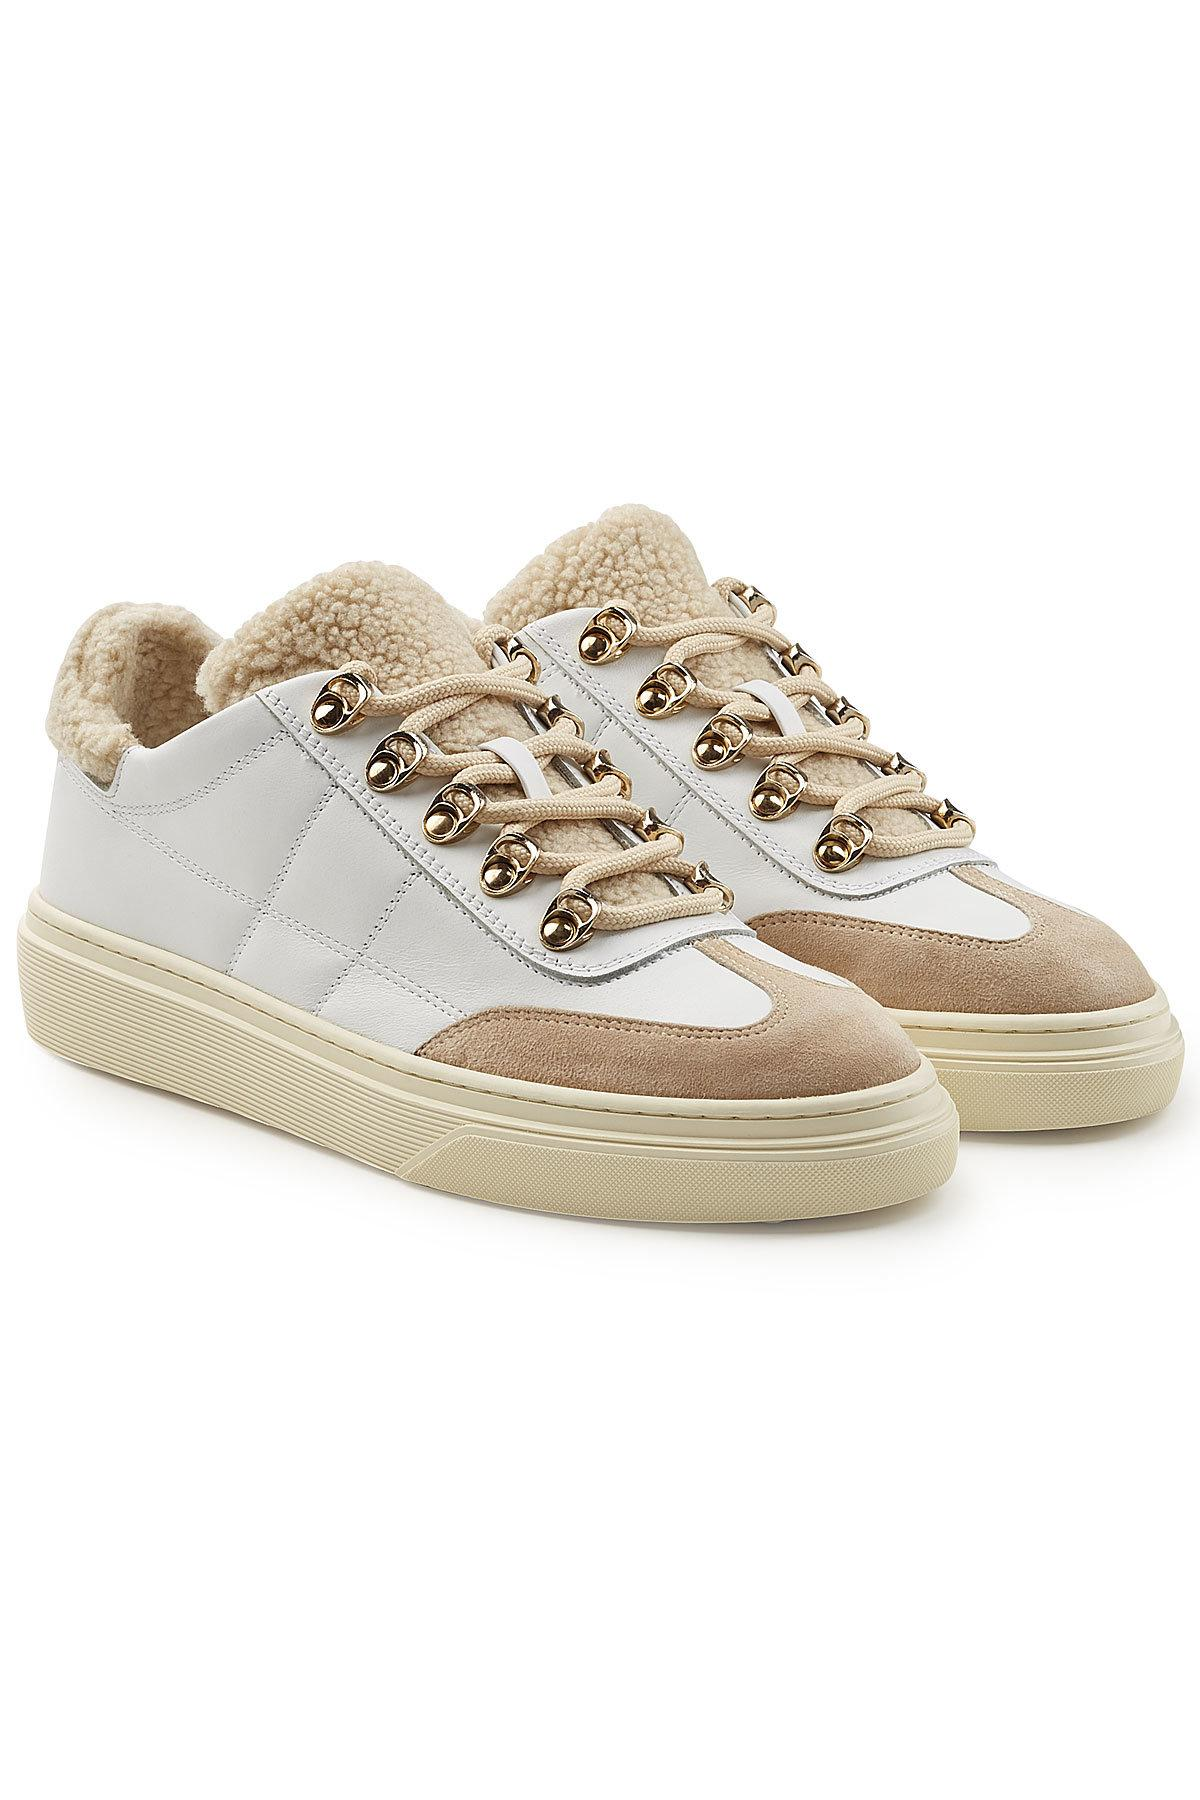 Hogan. Women's Leather And Suede Sneakers With Faux Shearling Insole